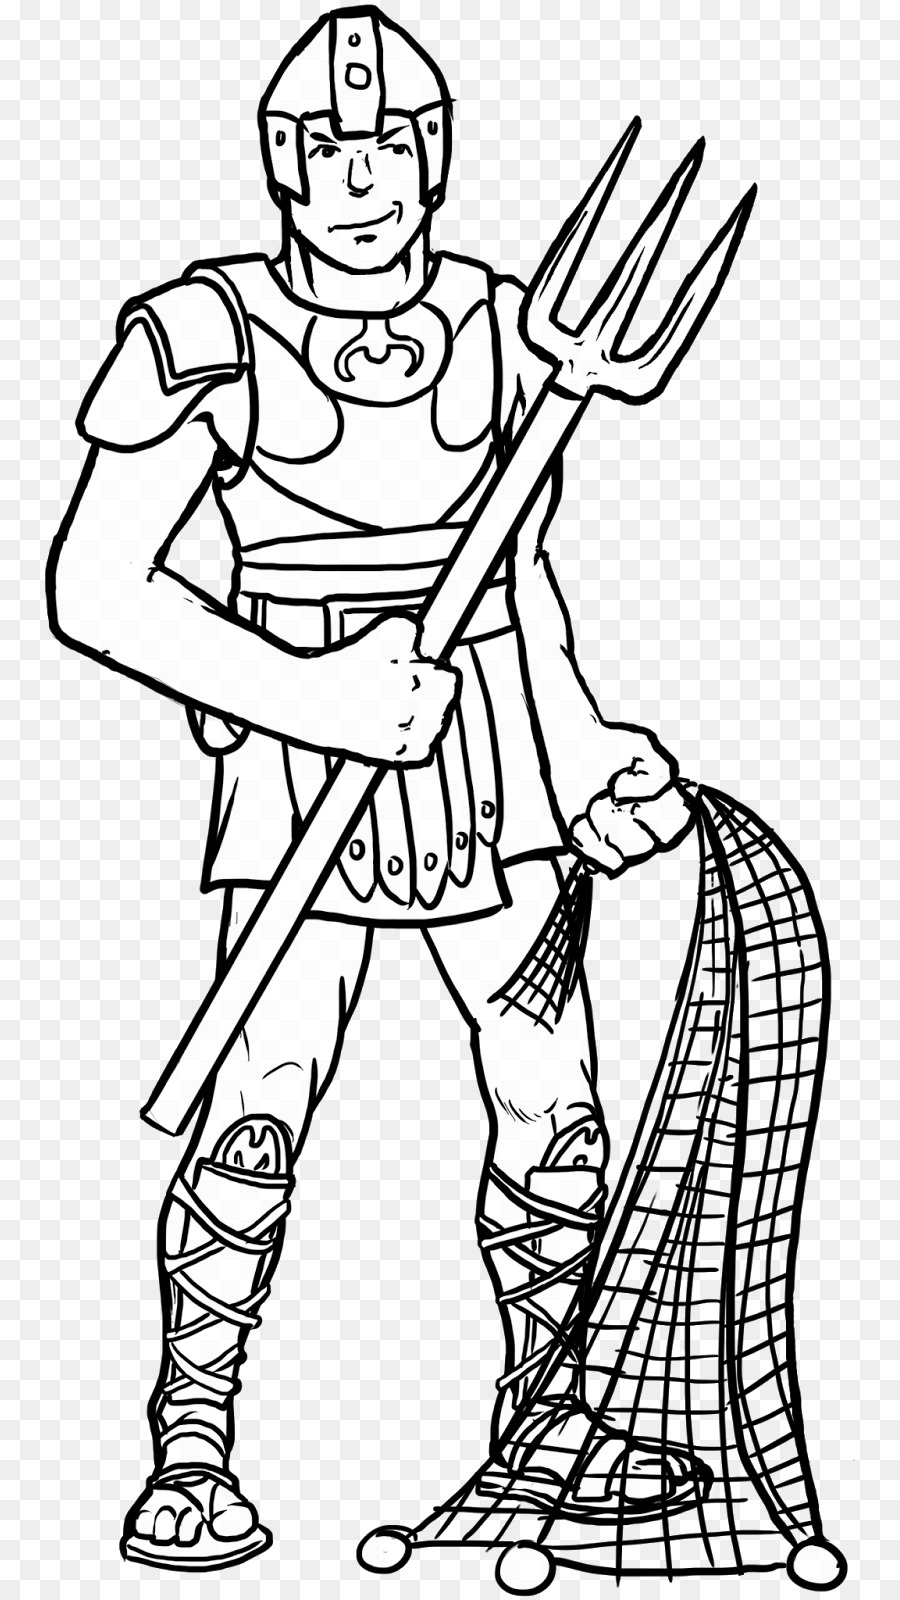 how to draw a gladiator gladiator drawing at getdrawings free download draw gladiator to how a